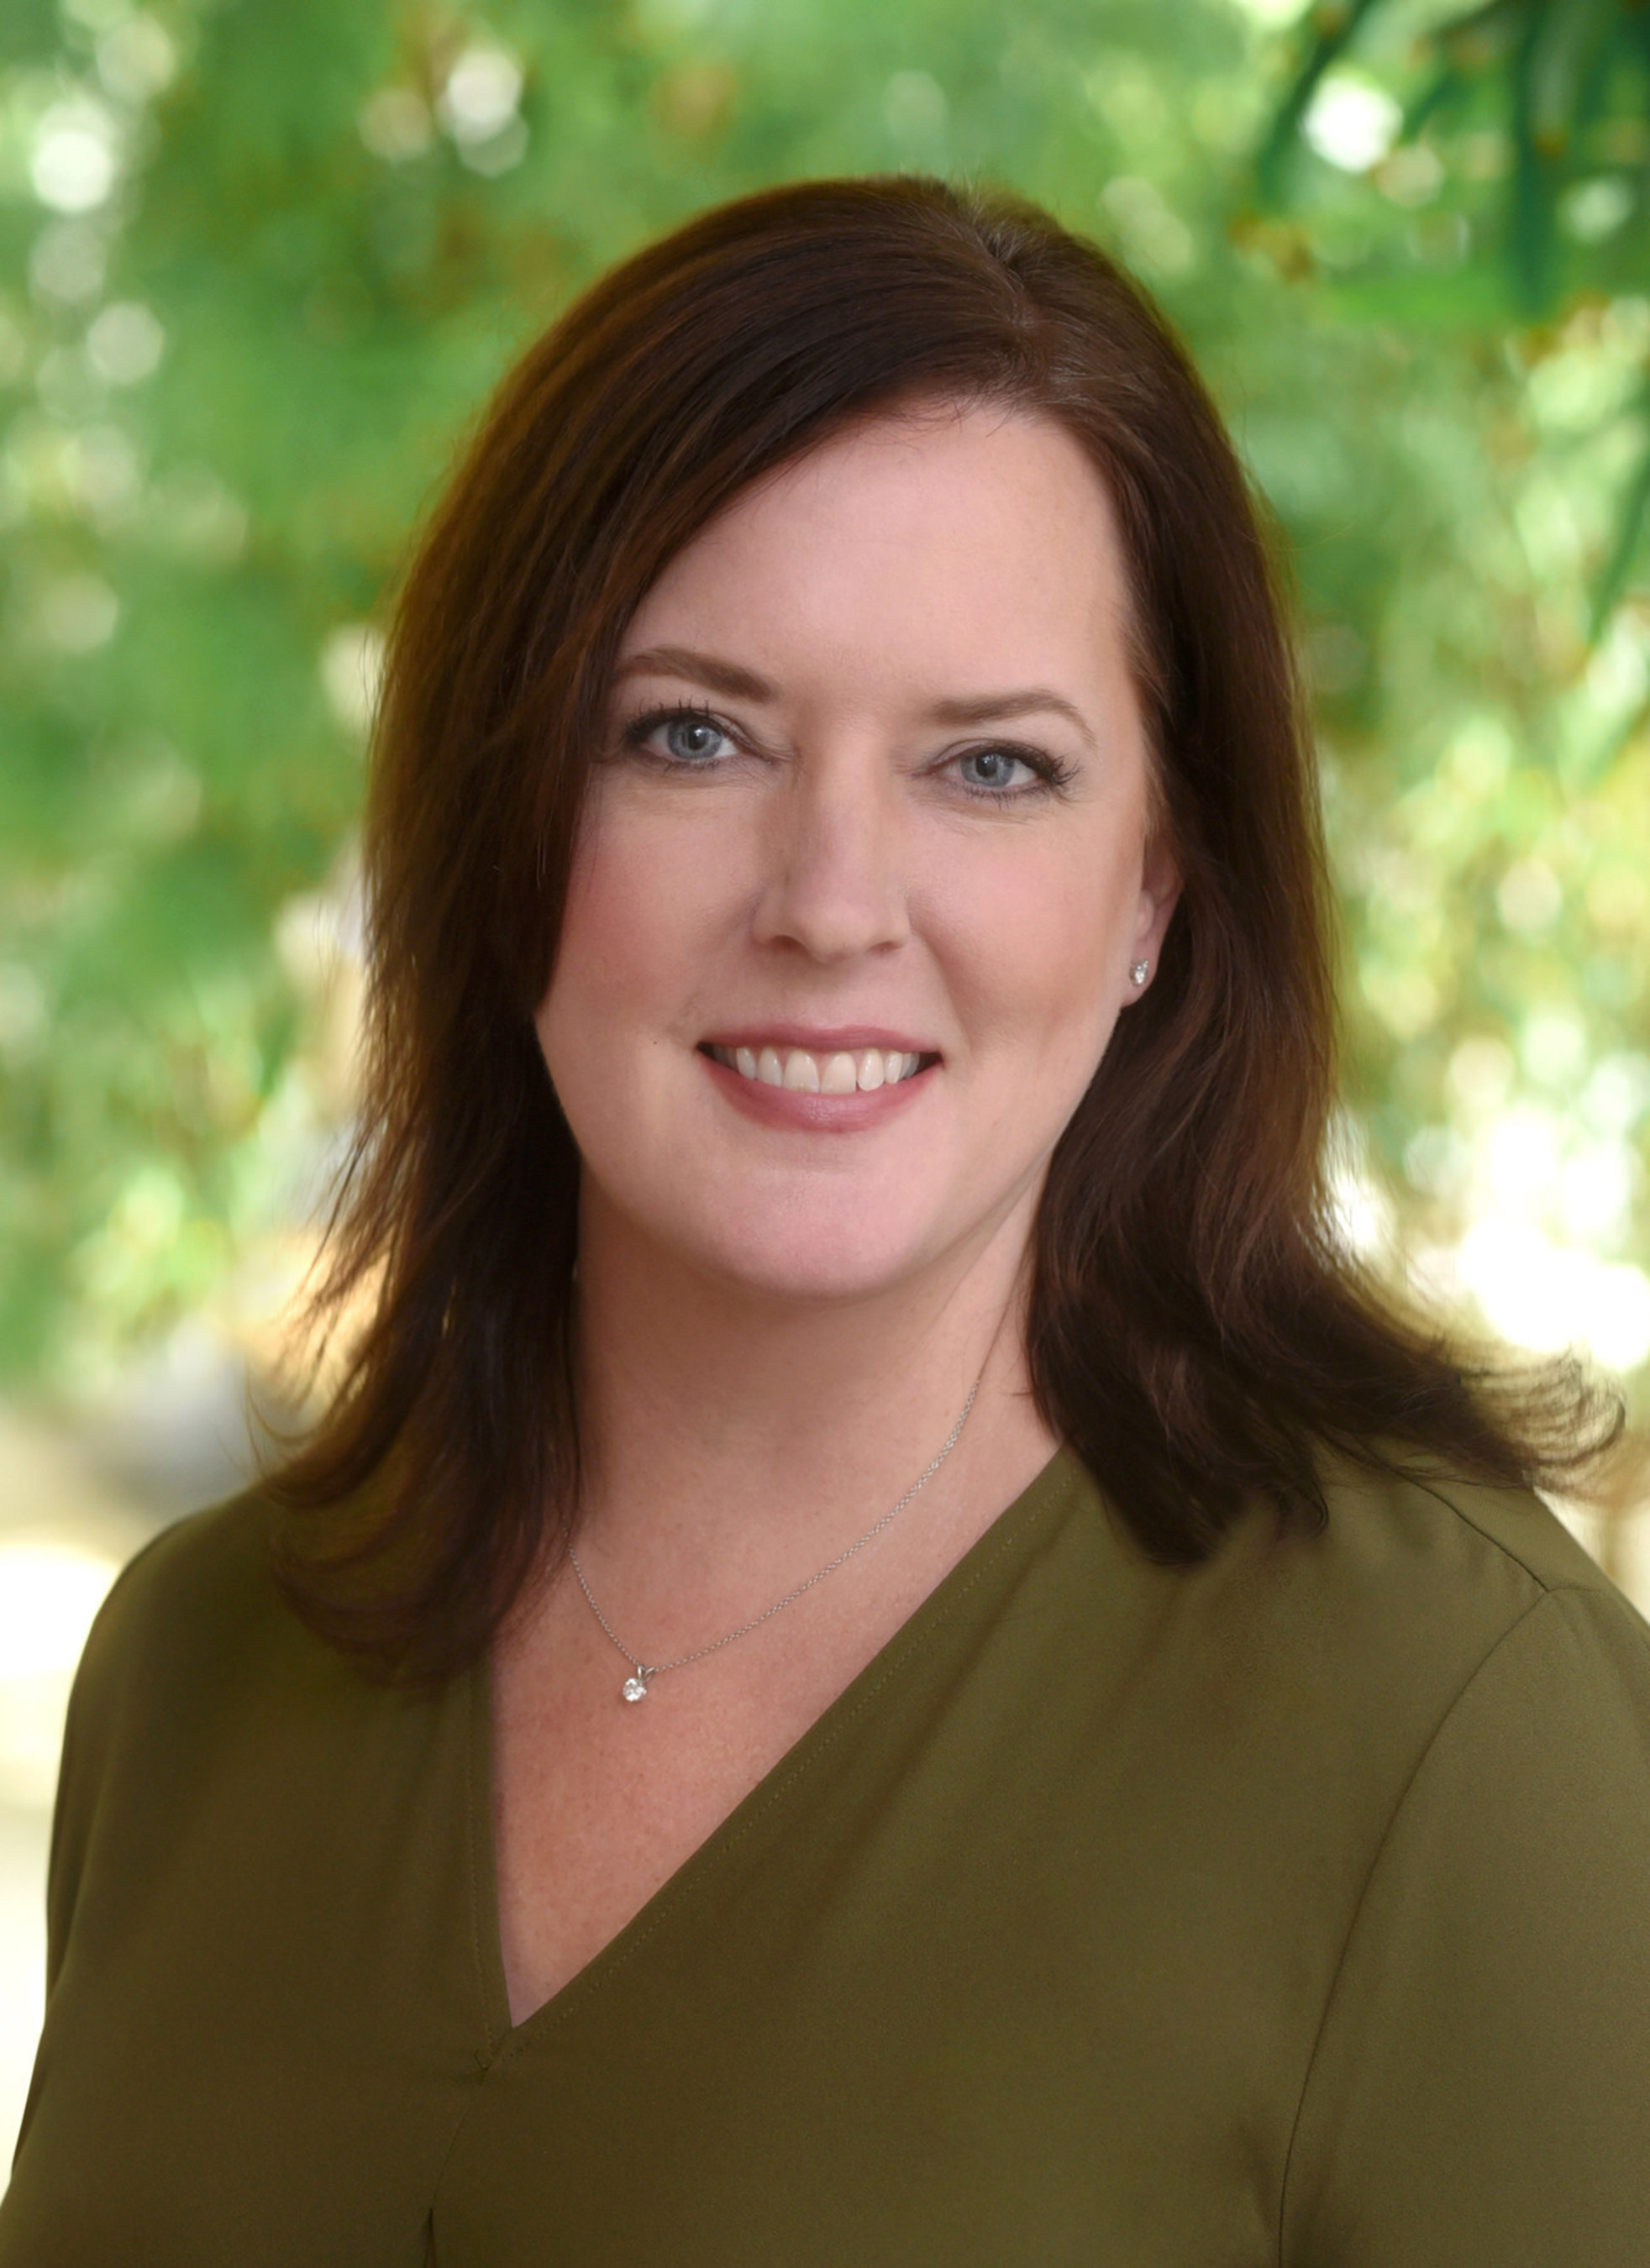 Sherry Anderson, Senior Vice President of Customer Experience, Continuum Health Alliance